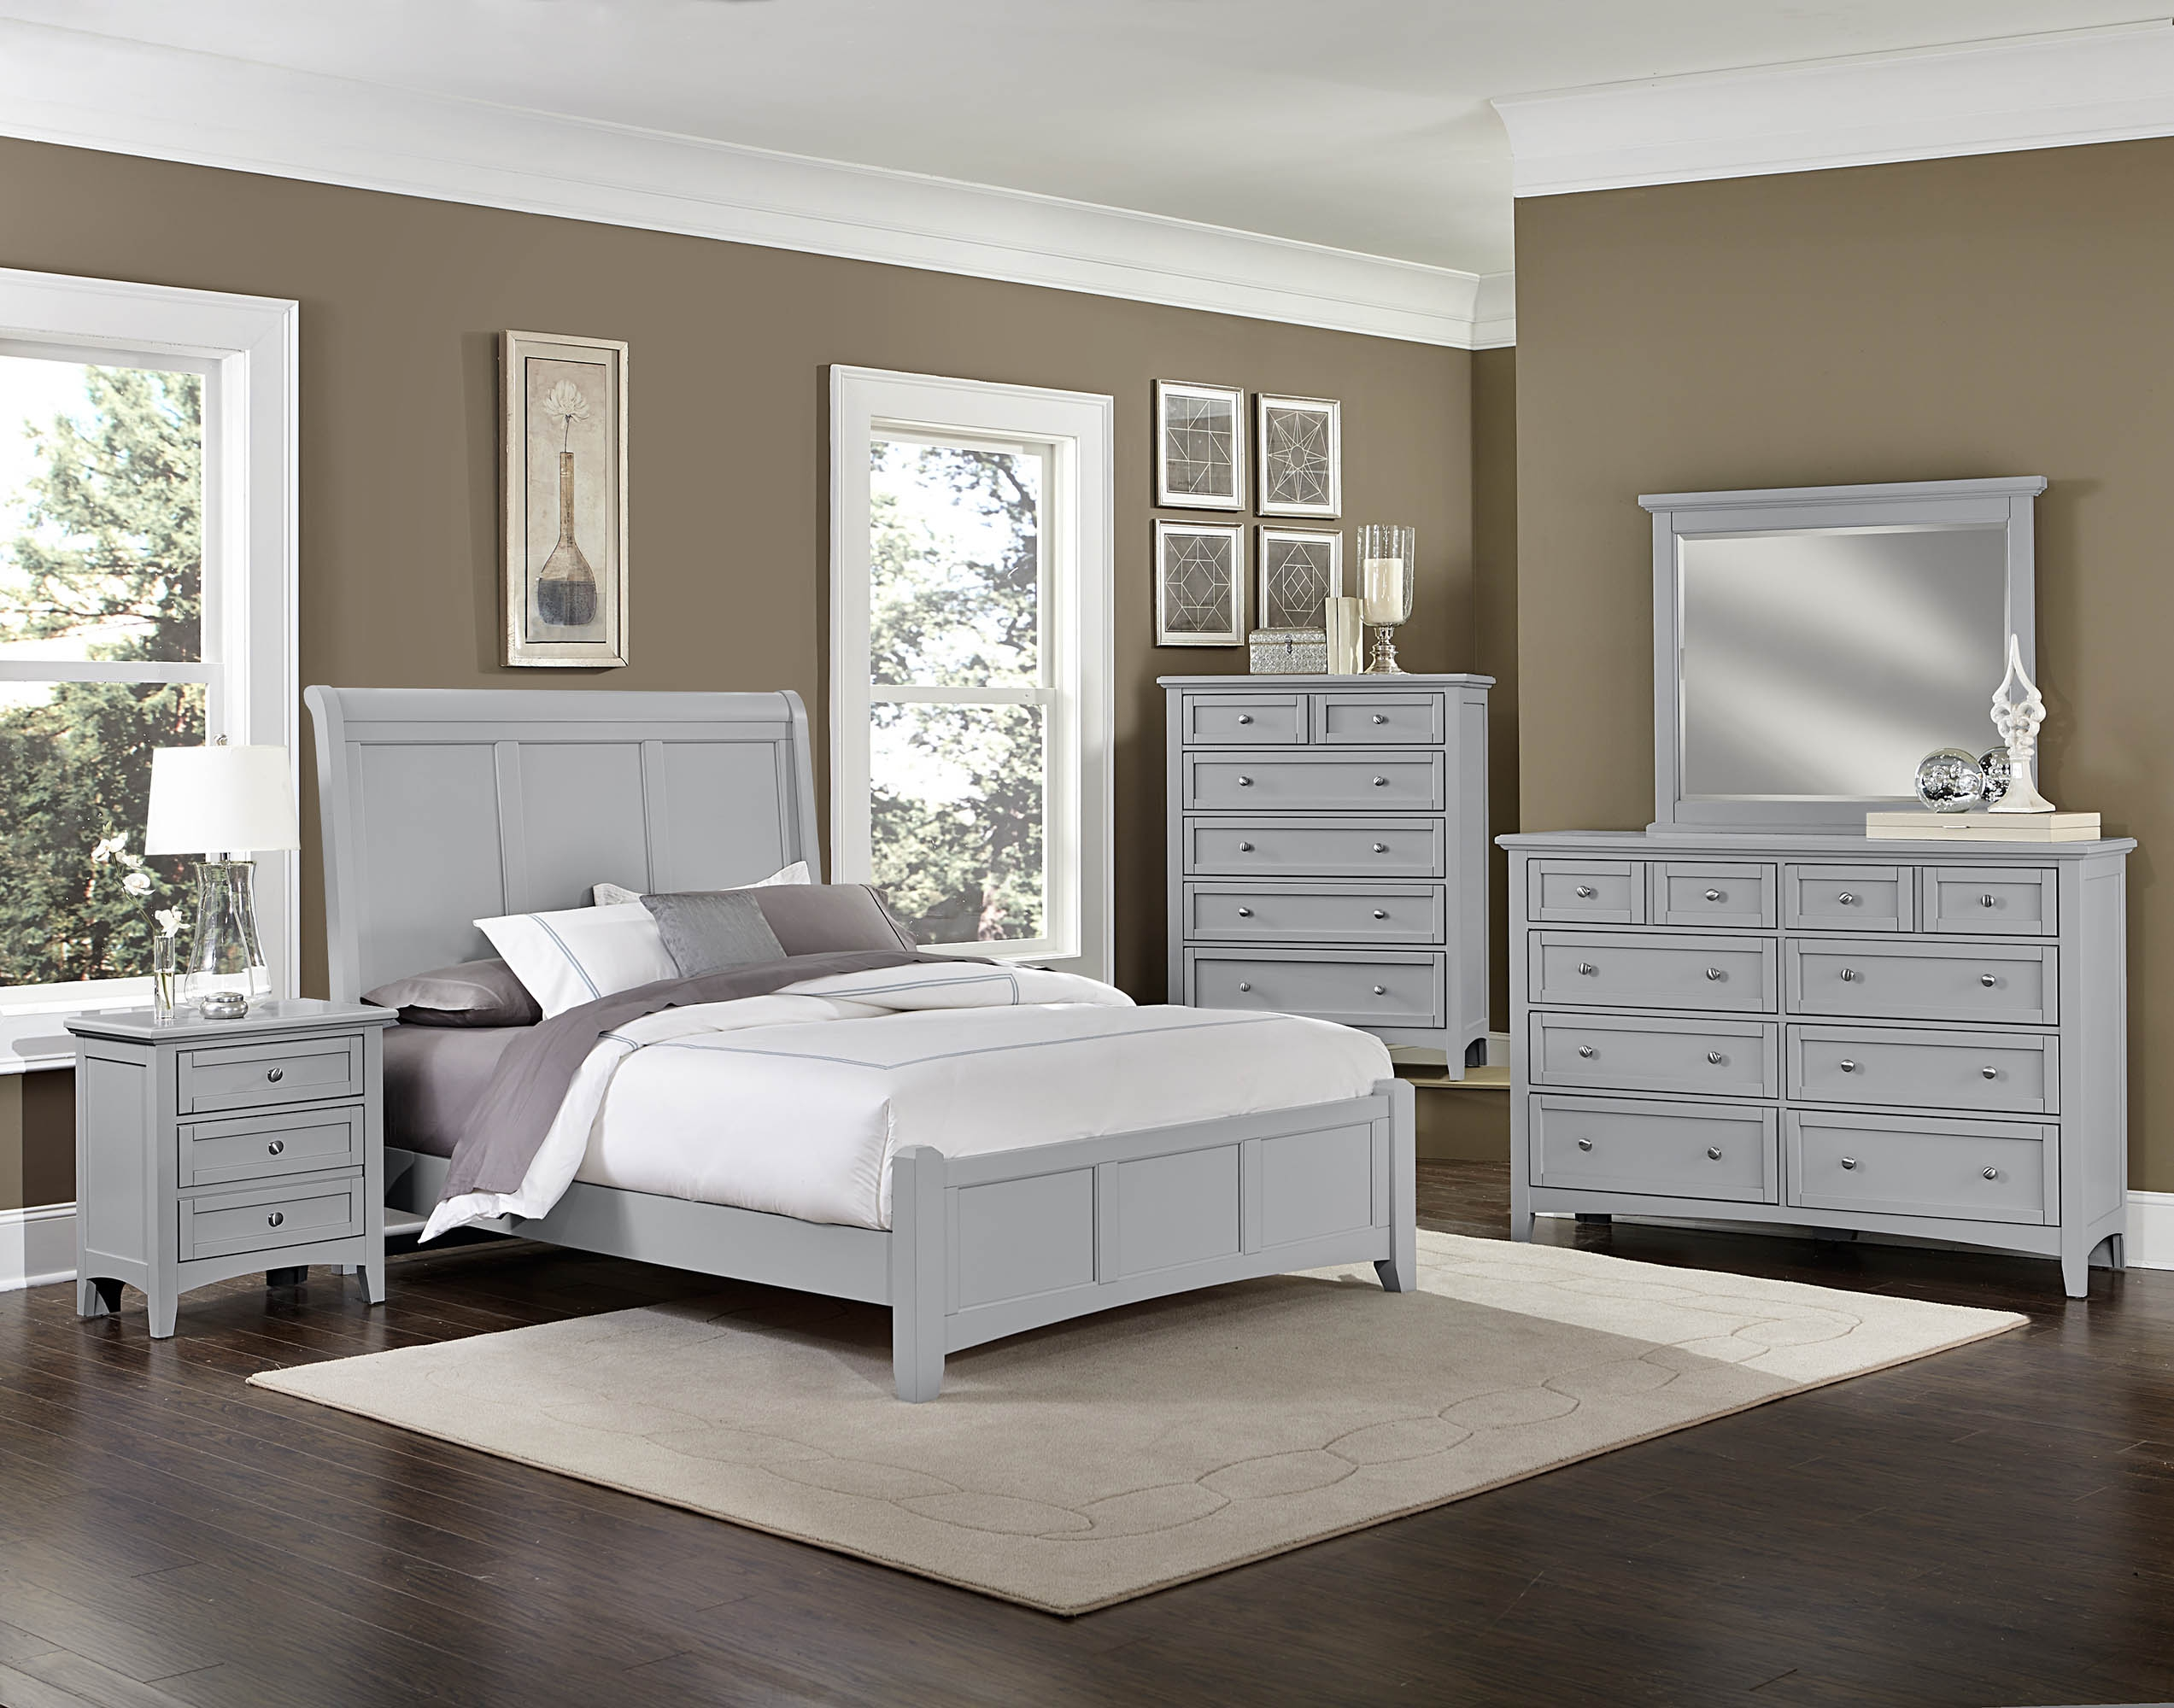 s bassett company cottages furniture commode collection vaughan white iteminformation cottage bedroom wendell